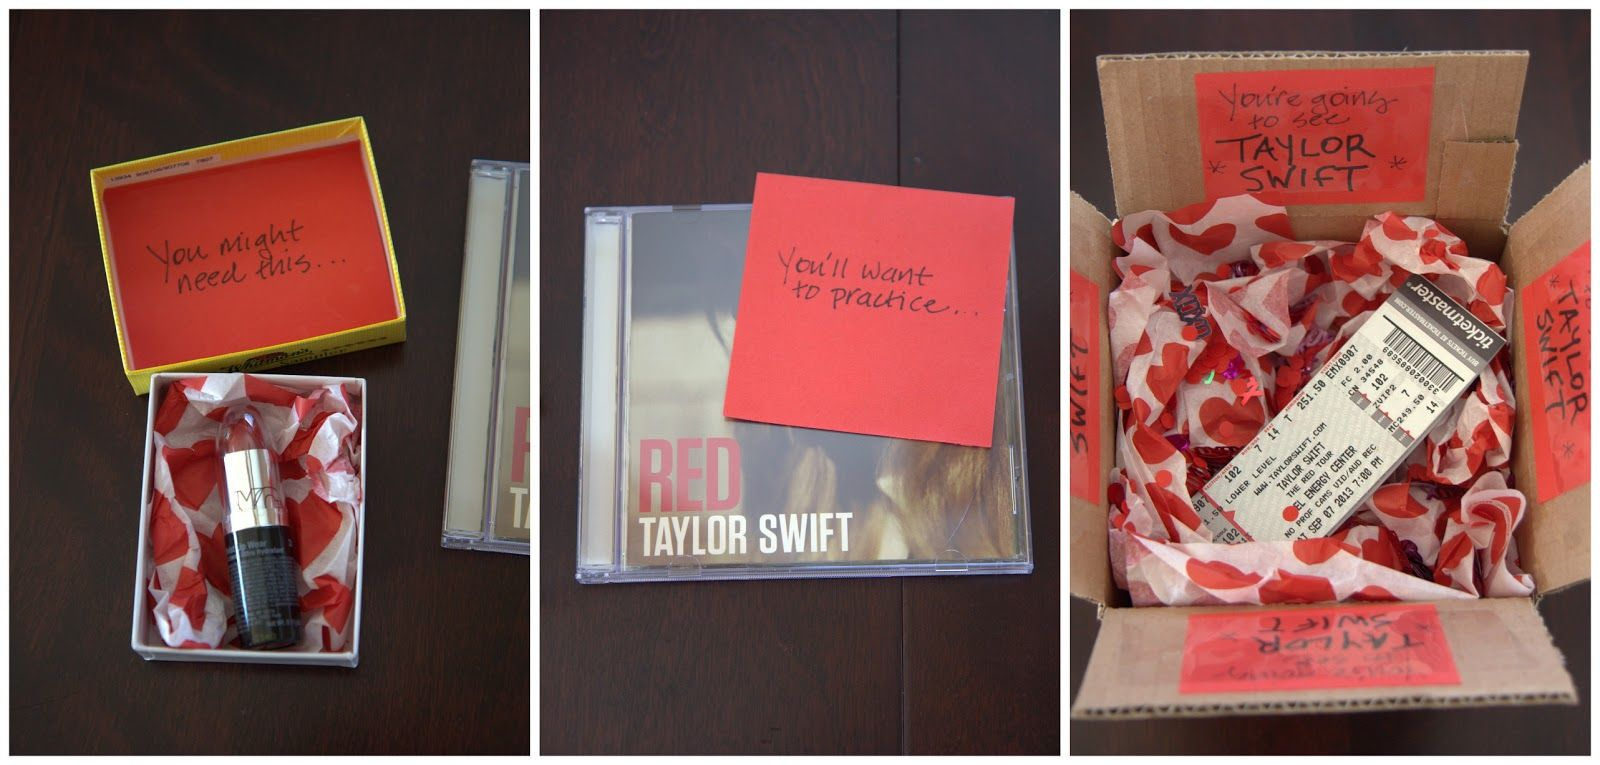 Taylor Gift: Taylor Swift Perfect!!! Include Red Lipstick And Wrap